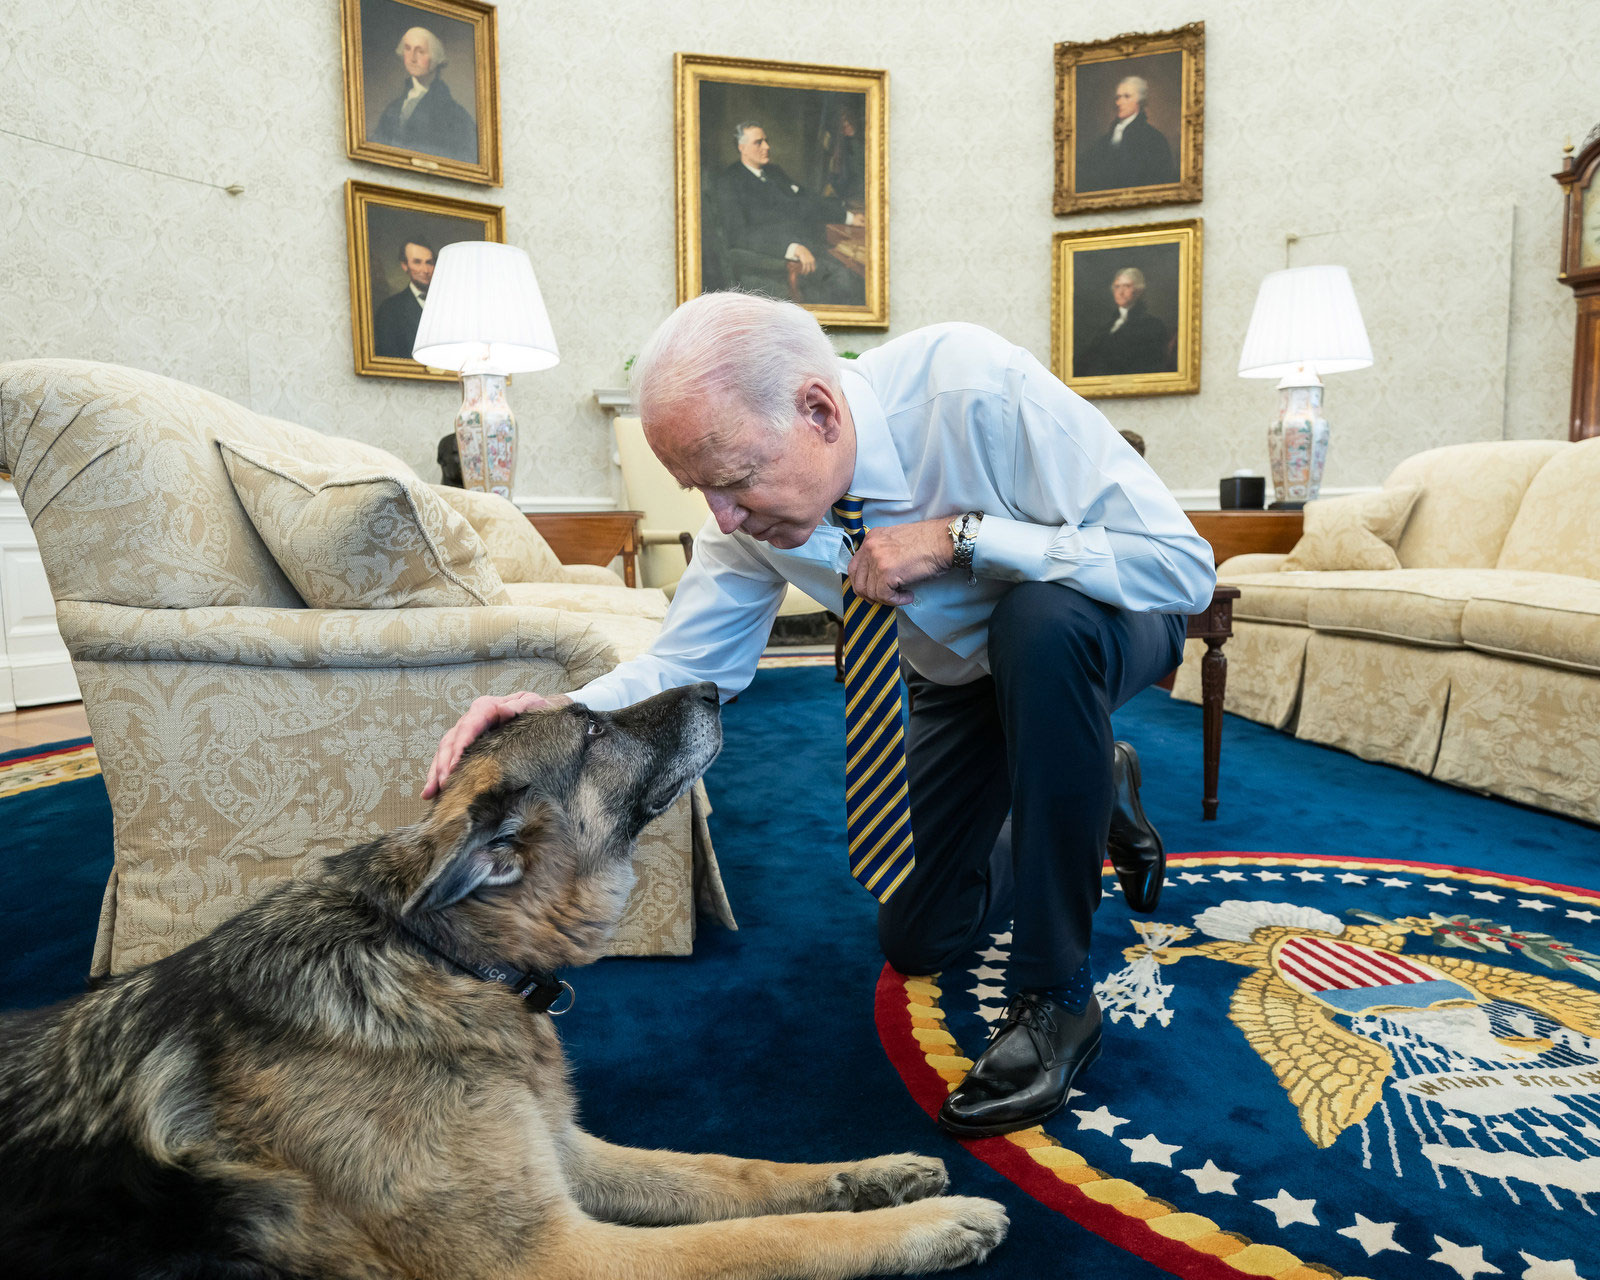 President Joe Biden pets the Biden family dog Champ in the Oval Office of the White House Wednesday, February 24, prior to a bipartisan meeting with House and Senate members to discuss supply chains.